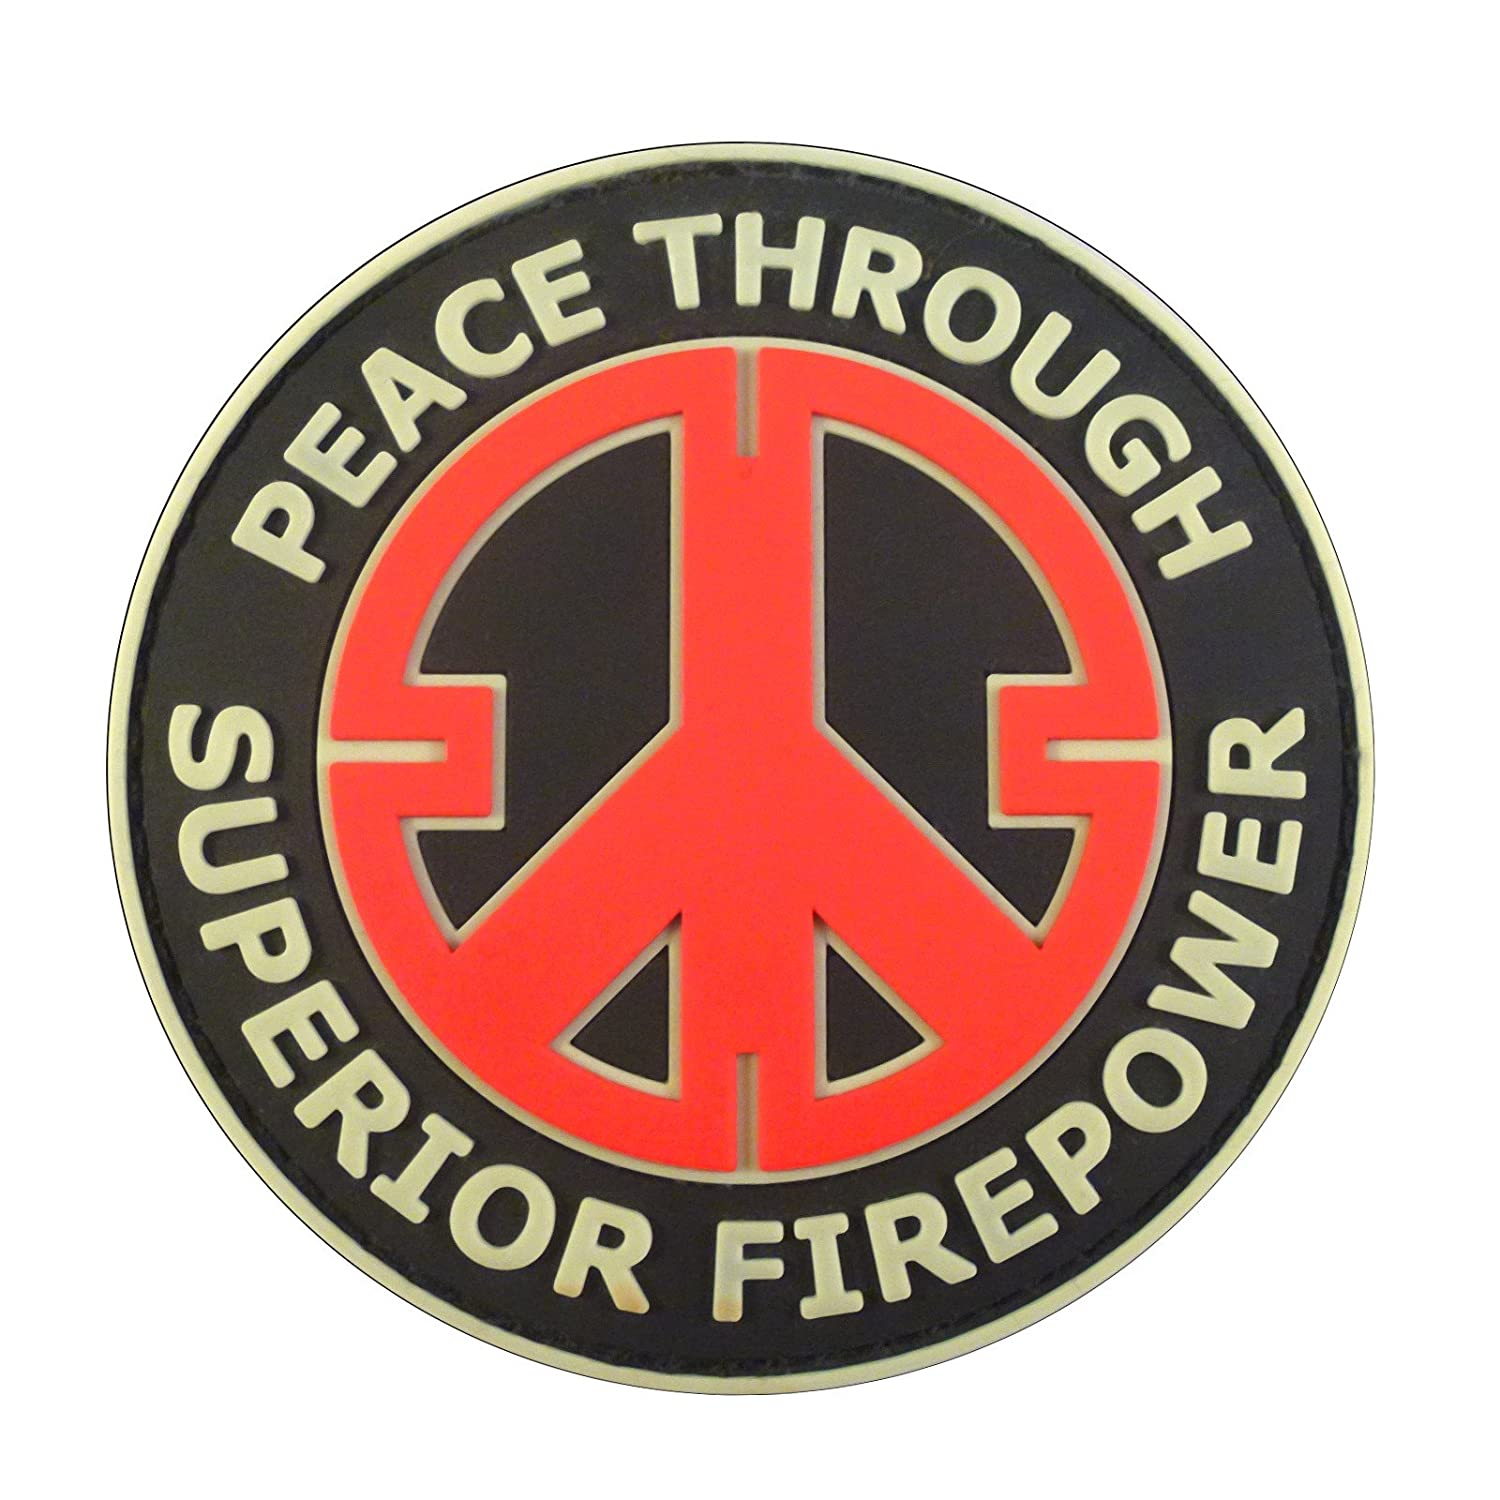 Peace Through Superior Firepower PVC Airsoft Patch Black